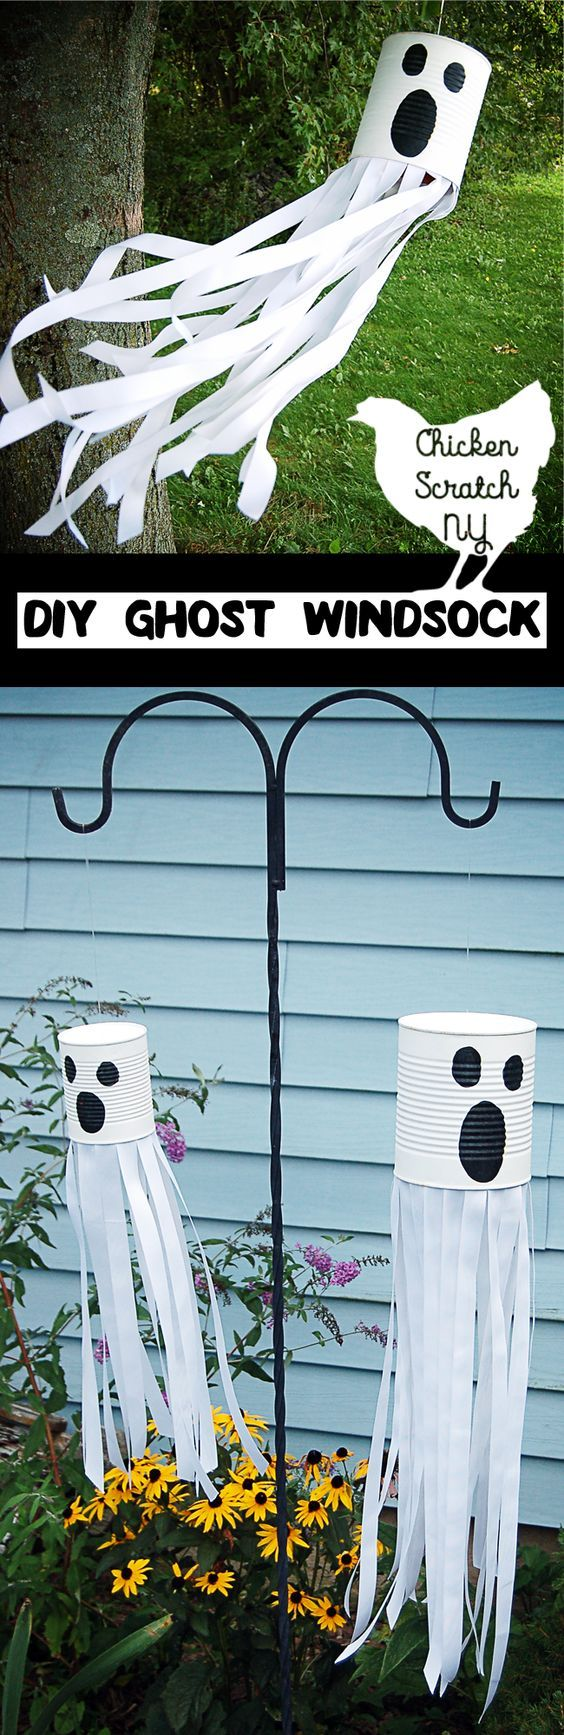 DIY Ghost Windsock With Ribbon.